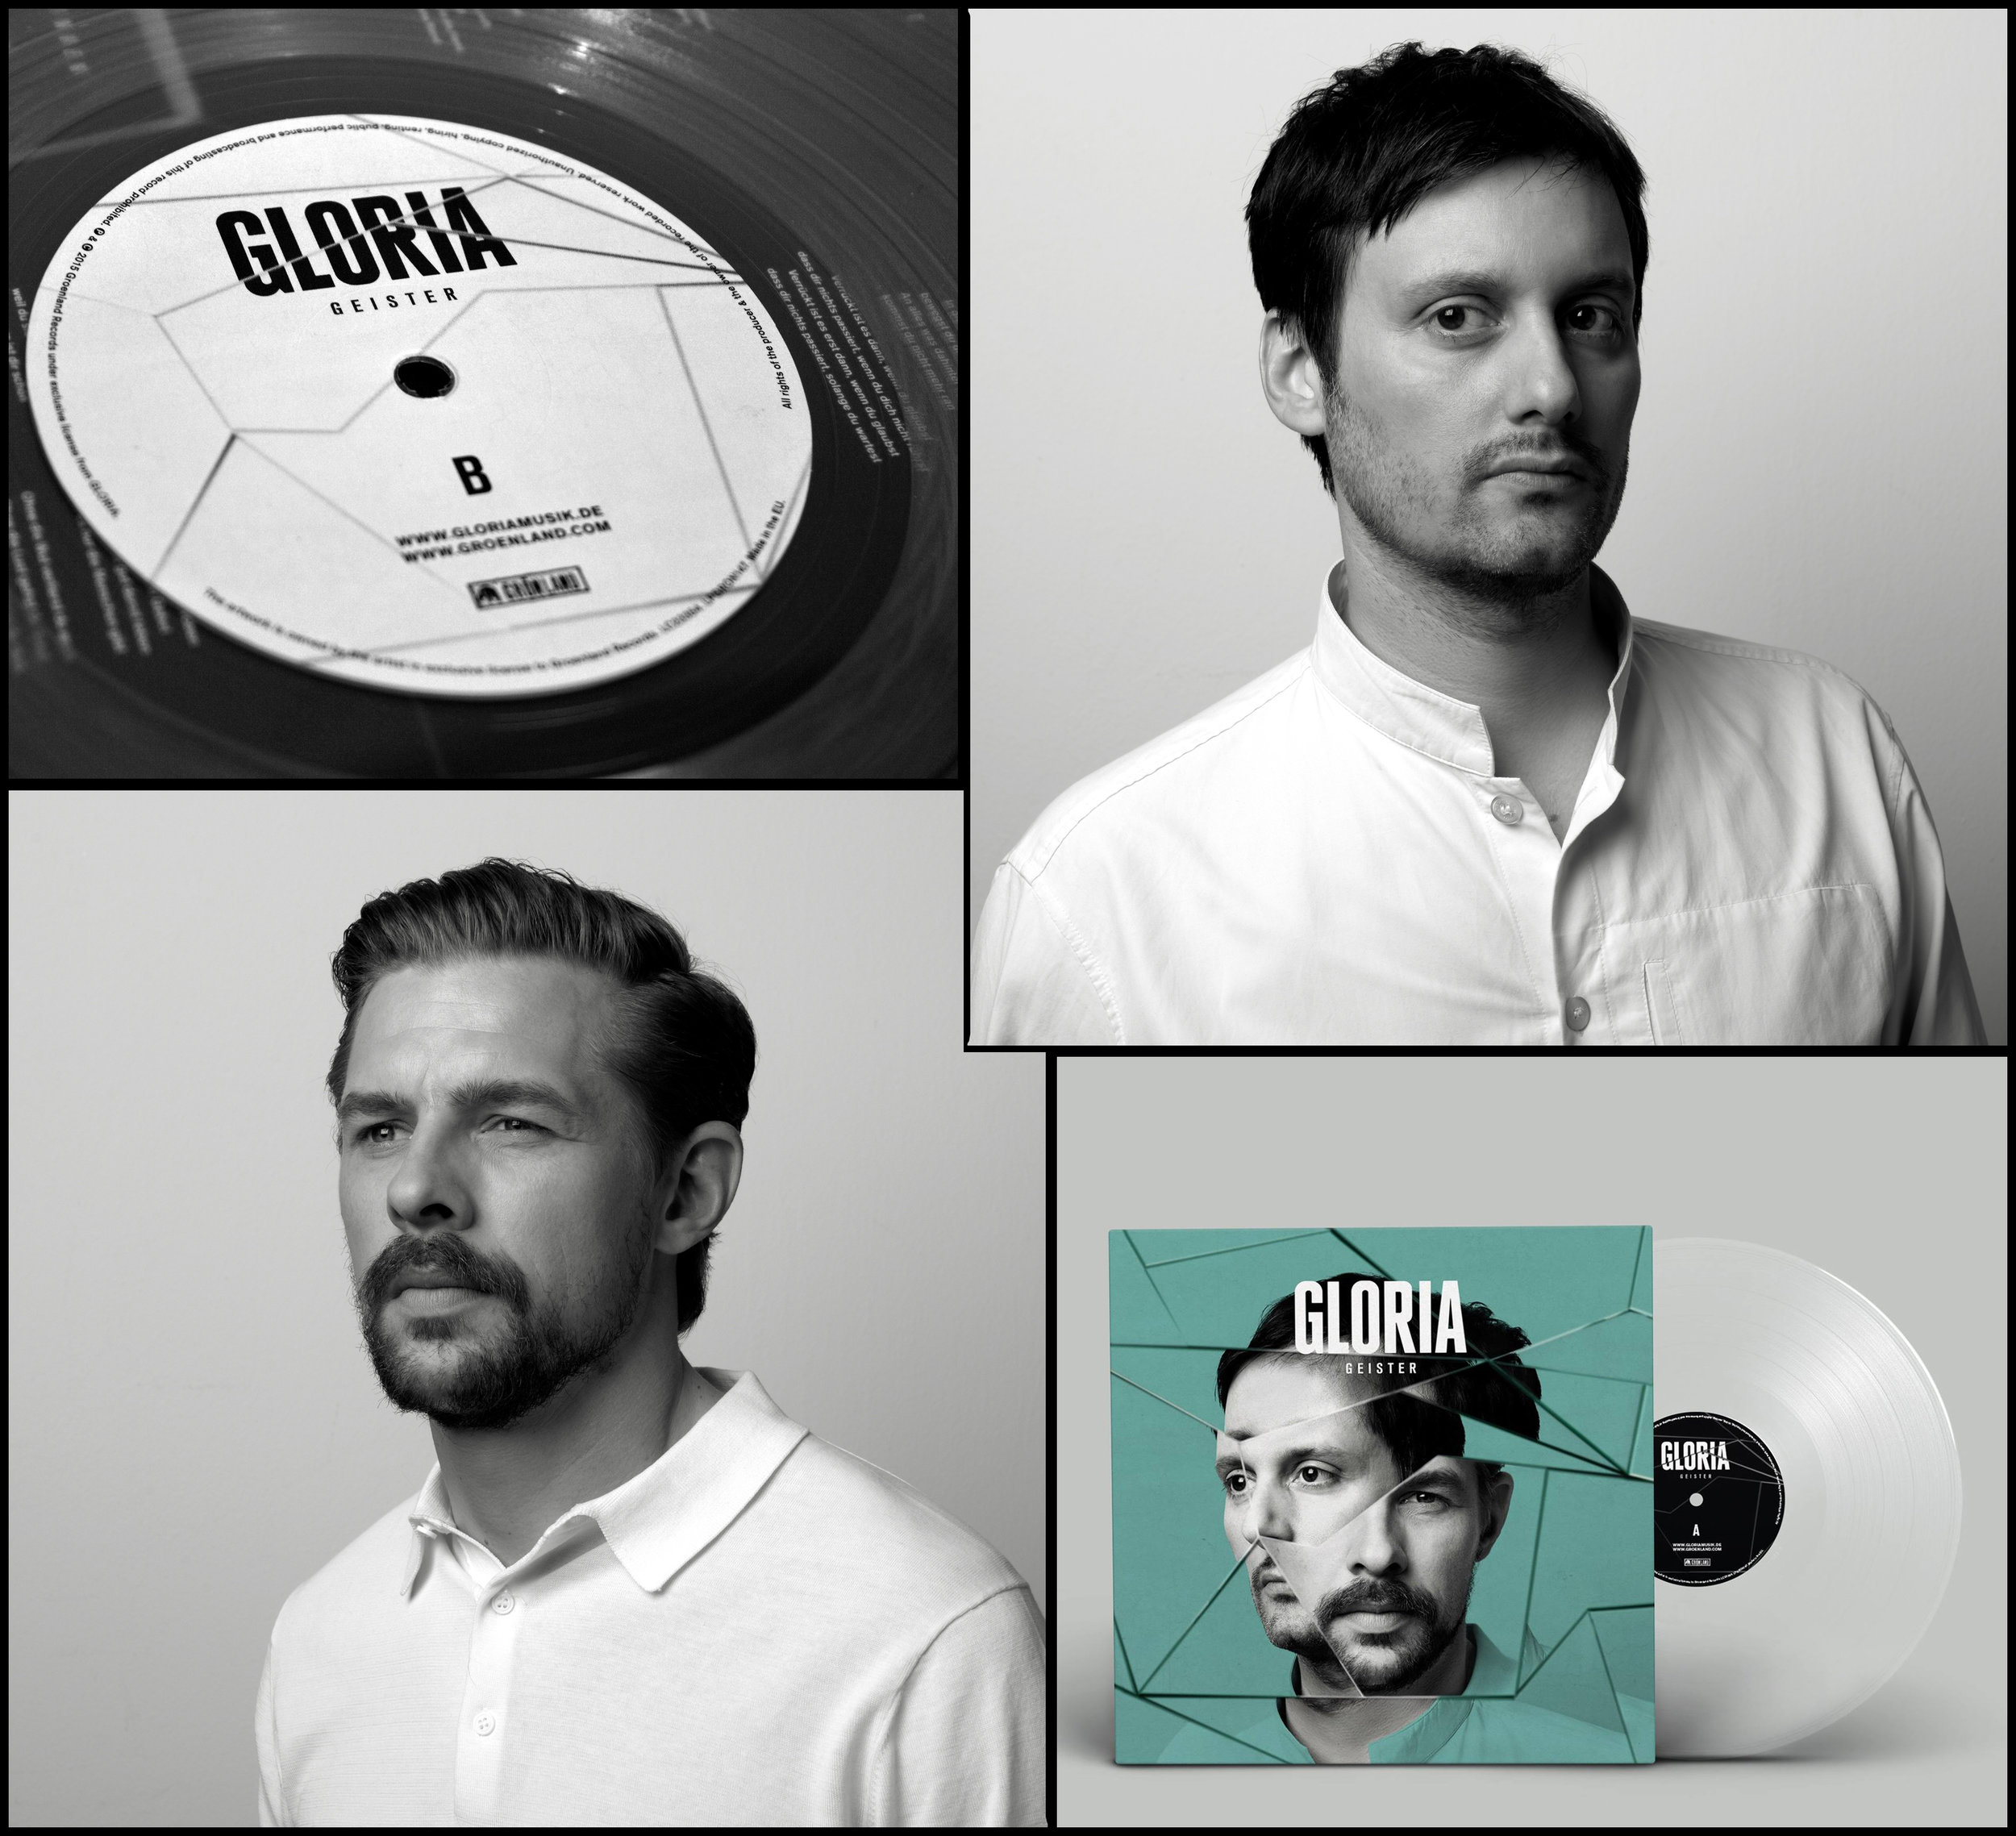 Gloria, for Grönland Rec. / Artwork by Rocket & Wink